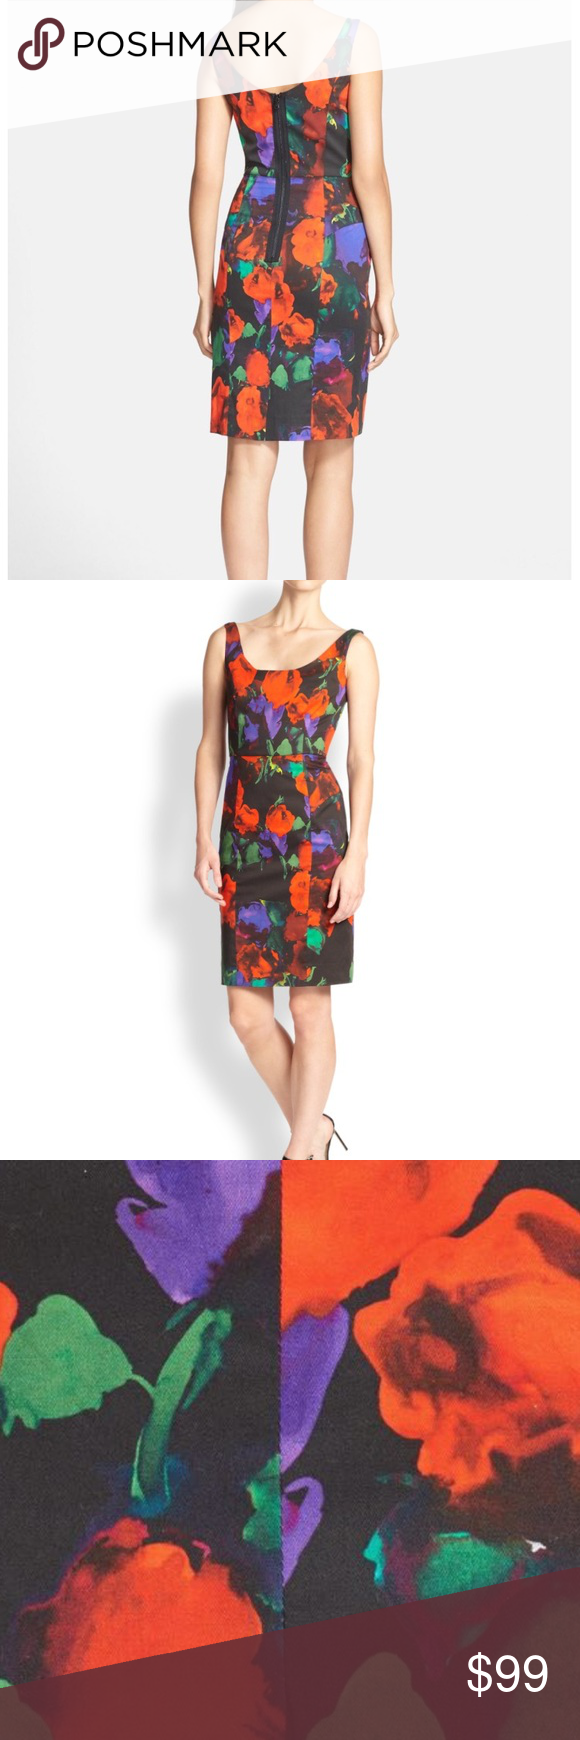 d2ae6359536 Milly Floral-Print Sleeveless Sheath Dress Gorgeous Milly Floral Sheath  Dress. Size 10. Scoop neckline and back. Sleeveless